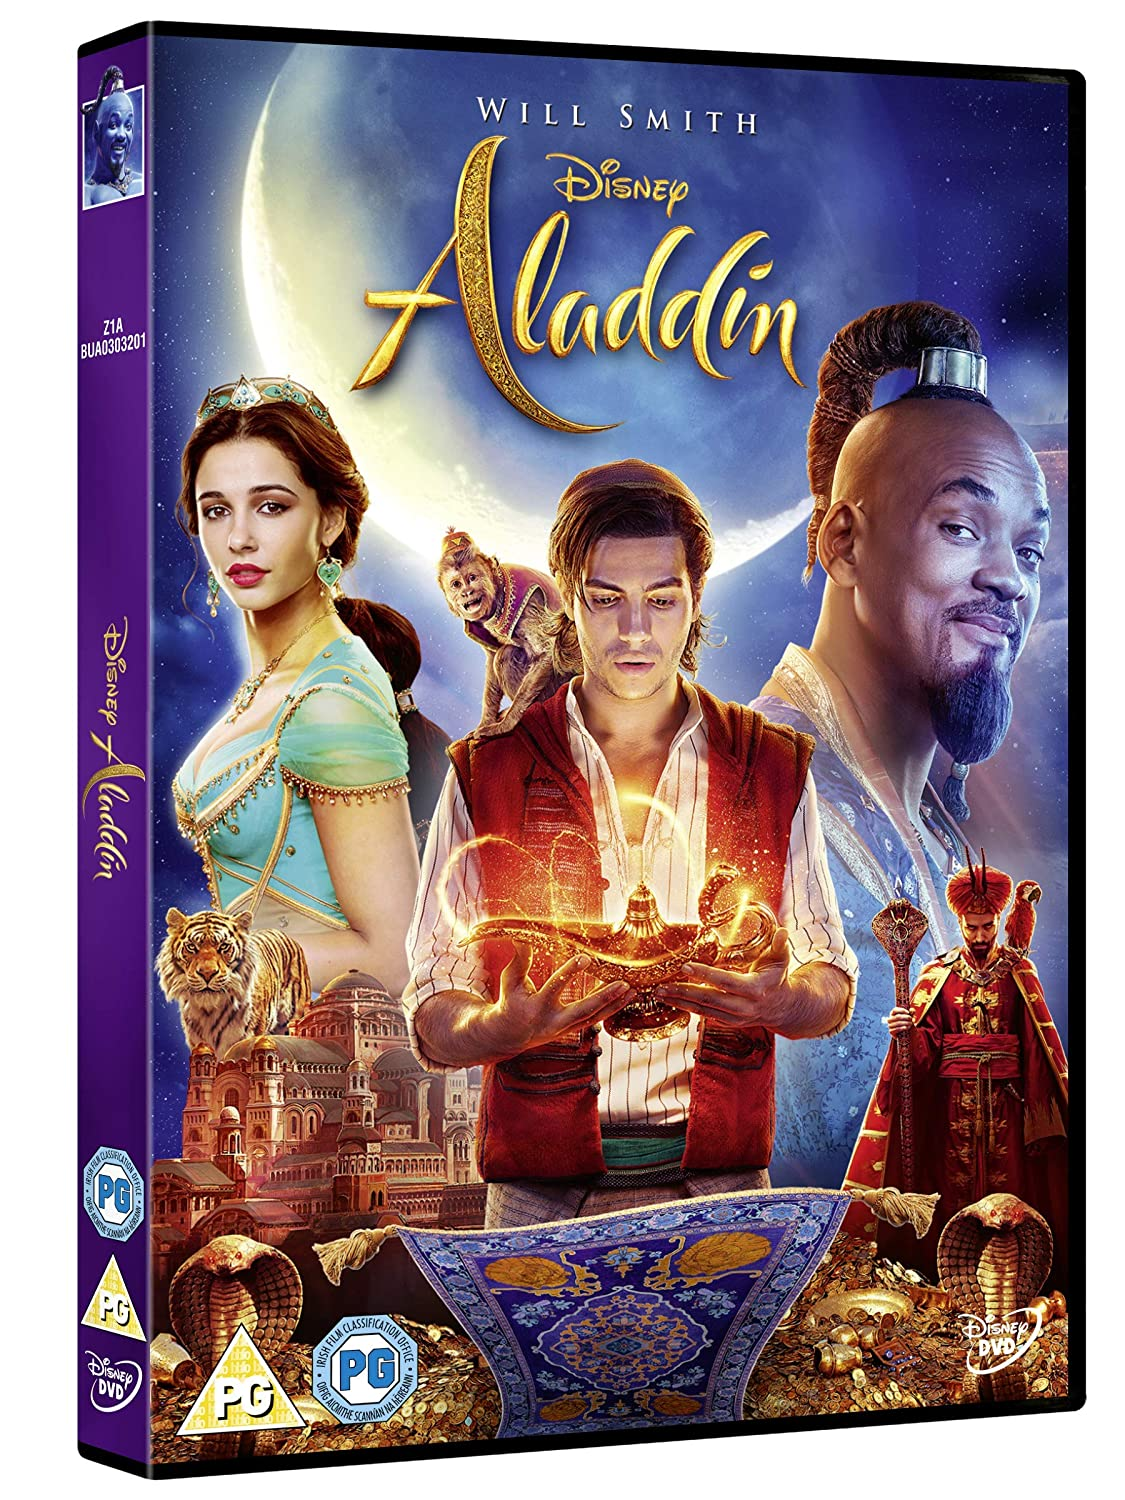 Aladdin Live Action 2019 [DVD]: Amazon co uk: DVD & Blu-ray